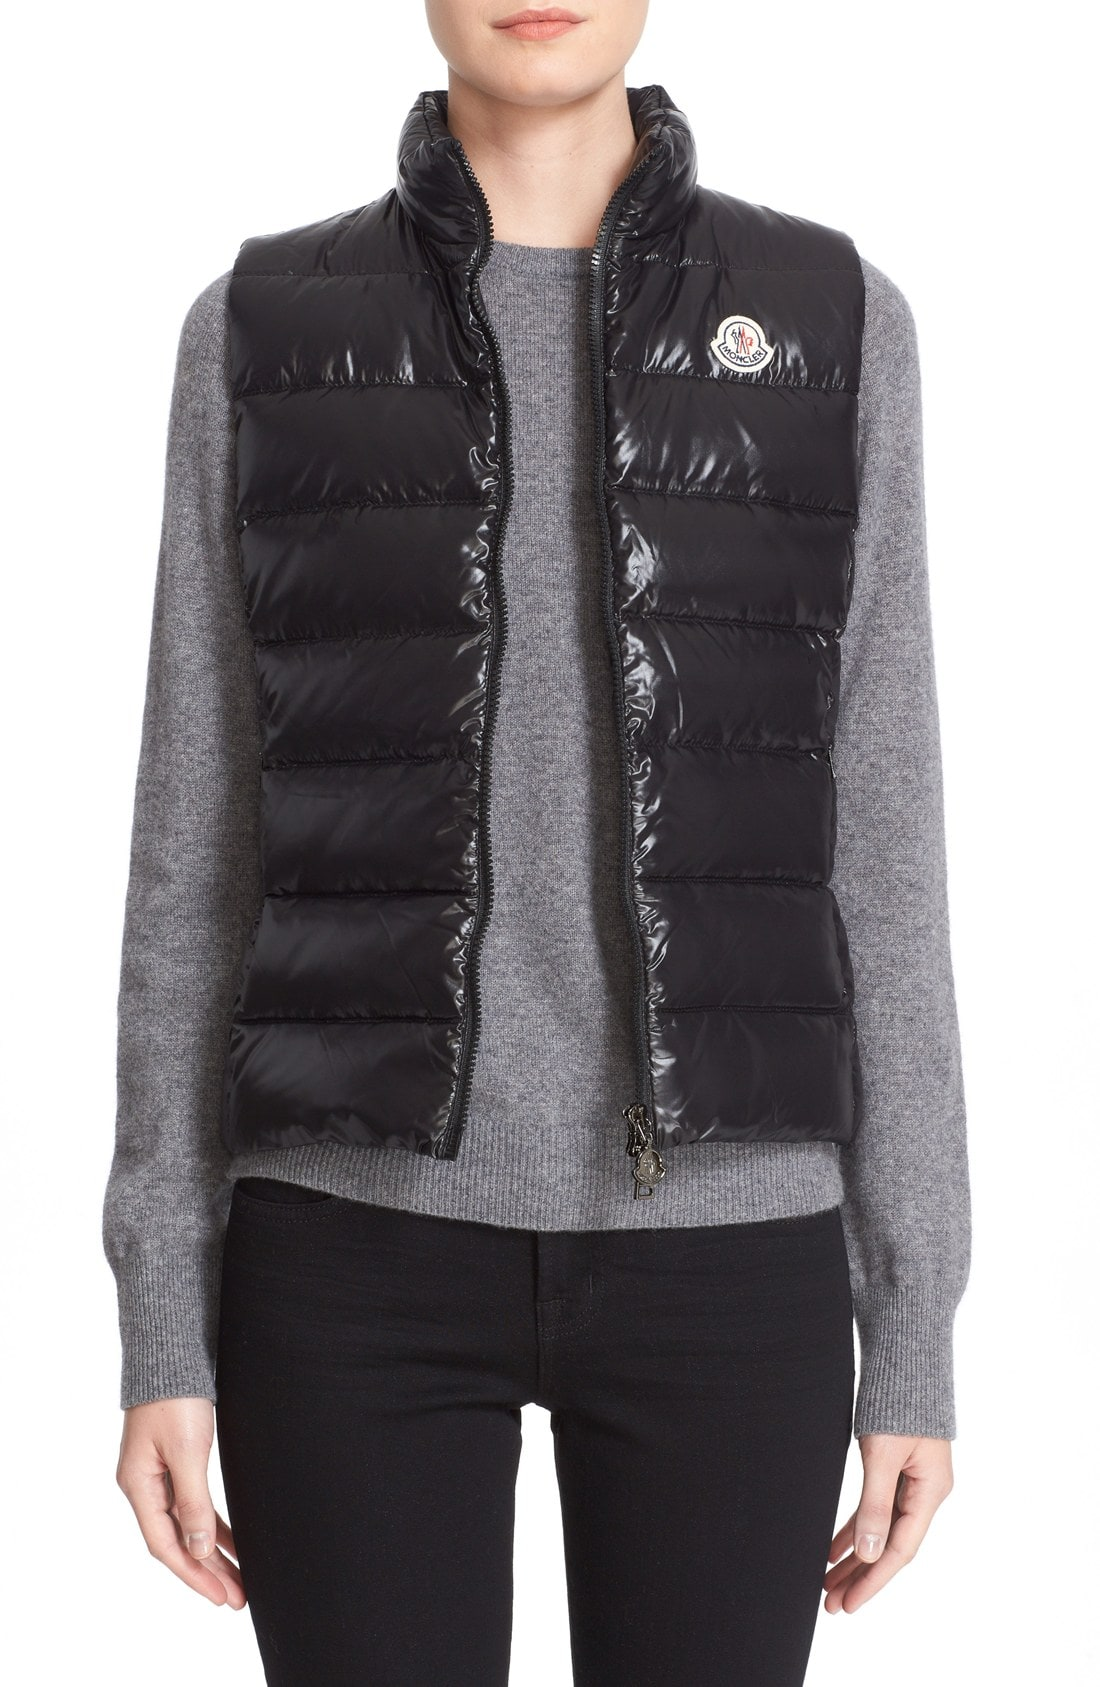 Women's Black Vests | Nordstrom